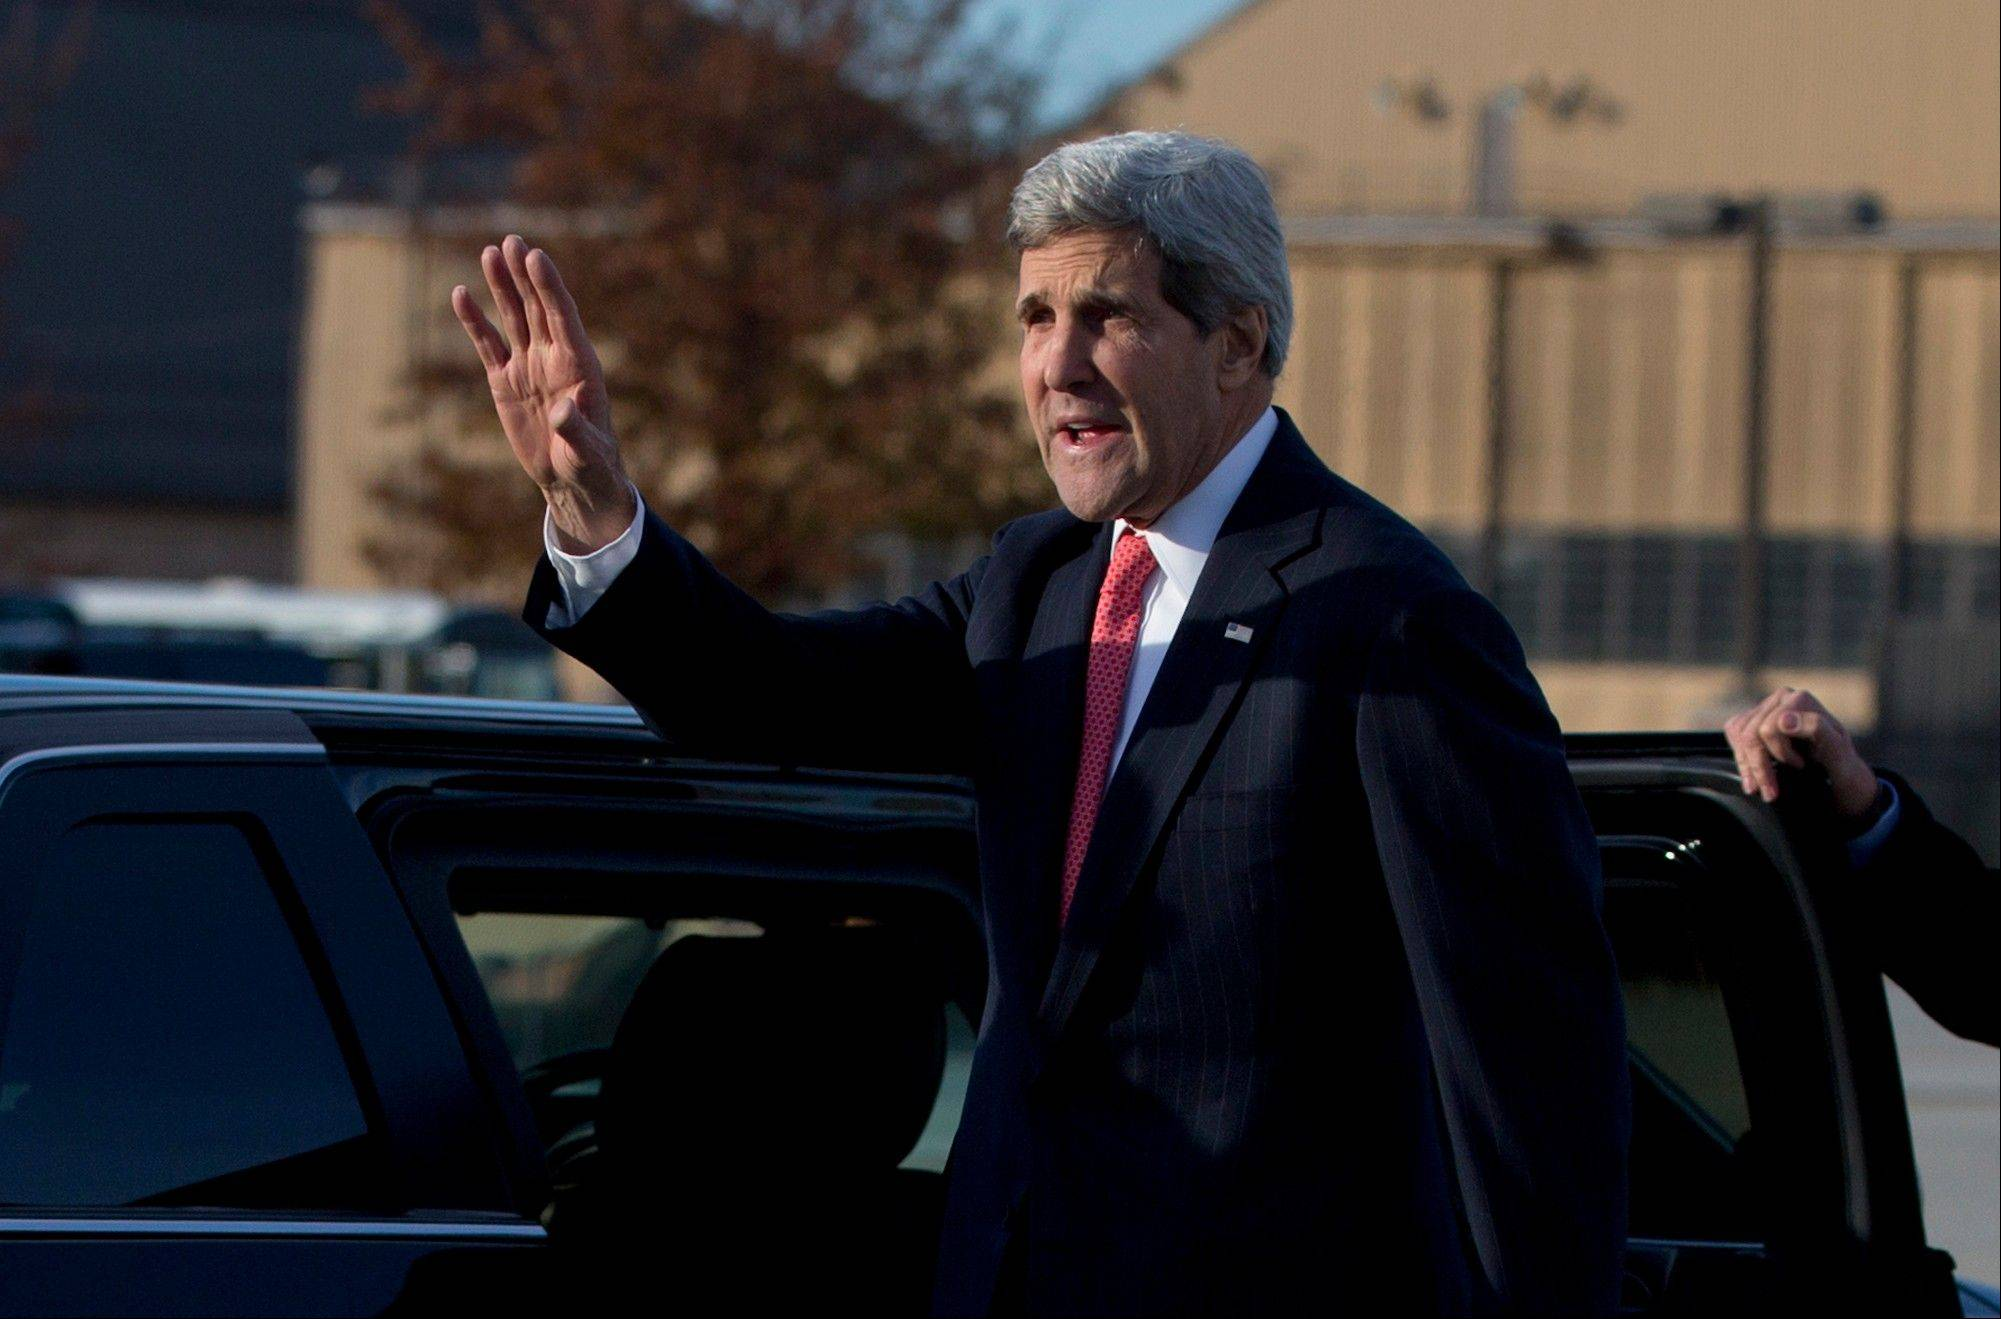 Secretary of State John Kerry waves before getting into his motorcade vehicle as he arrives at Andrews Air Force Base, Md., Monday, Nov. 25, 2013, as he returns from London. While in London Kerry had meetings with Libyan's Prime Minister Ali Zeidan and British Foreign Secretary William Hague. Prior to London, Kerry was in Geneva, Switzerland, for the Iran nuclear talks.